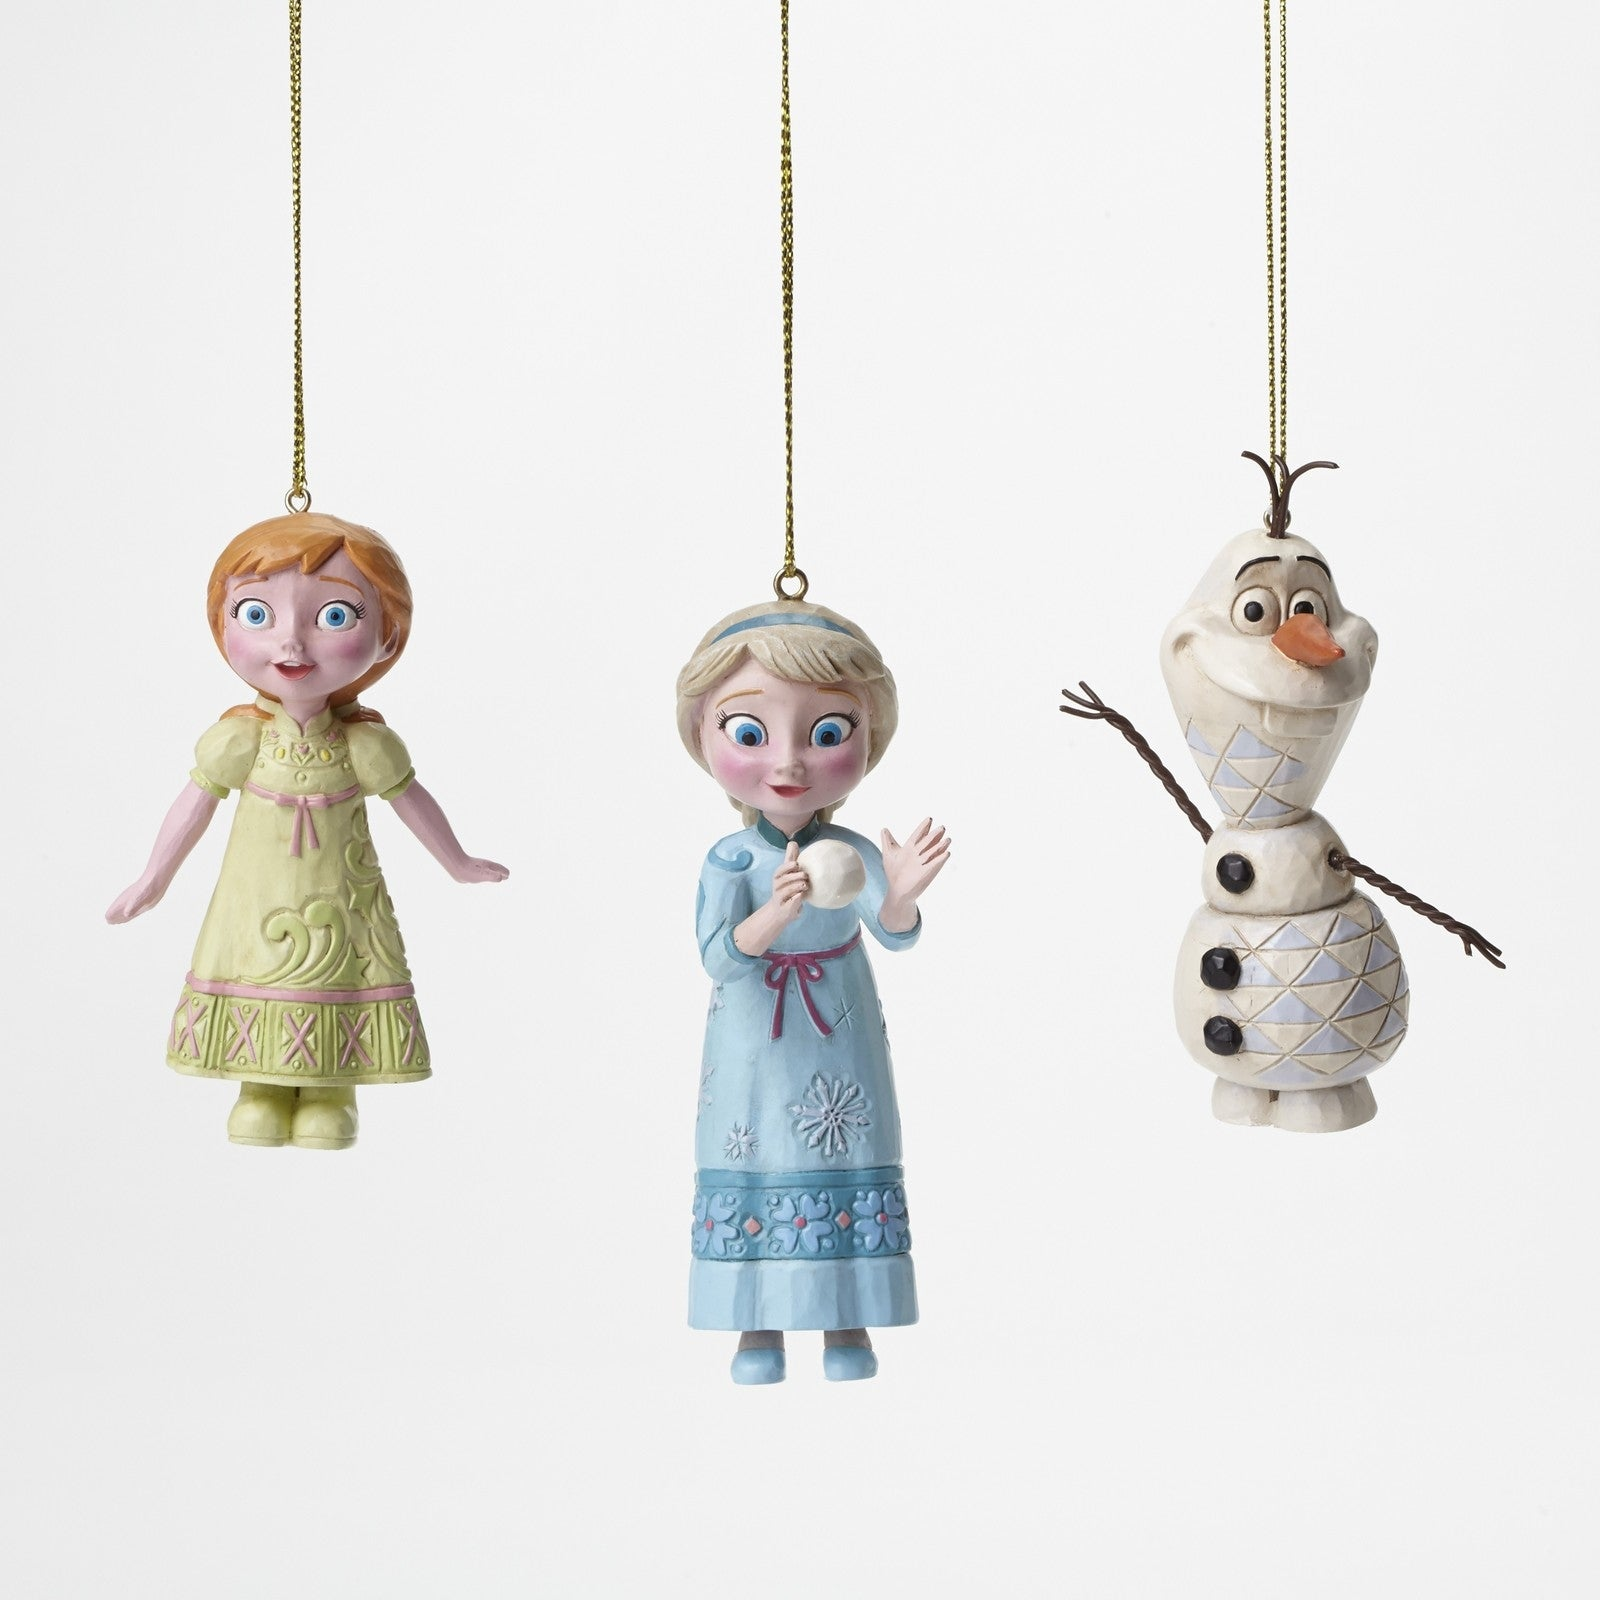 Jim Shore Disney Tradition Frozen Hanging Ornament set of 3